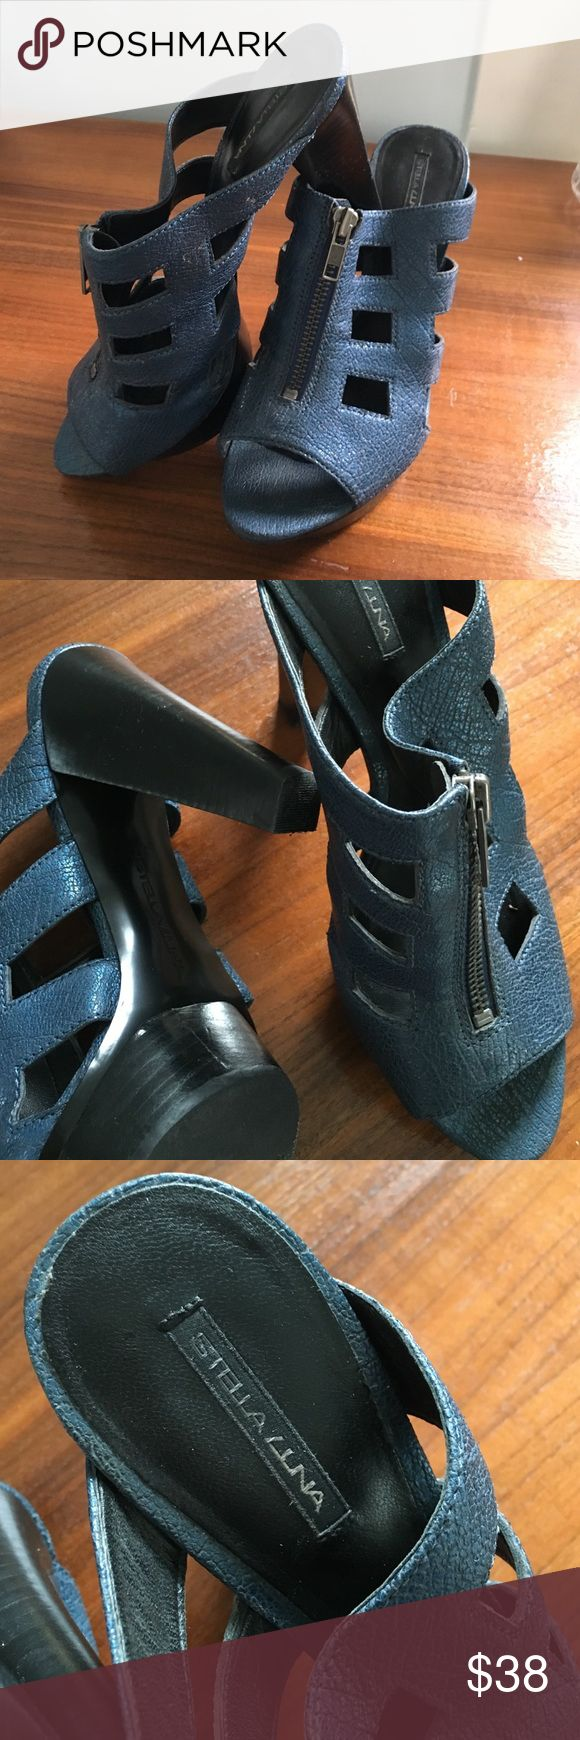 Stella Luna Blue Mules With an almost metallic finish, these mules have a zipper detail in the front that can be unzipped. Don't remember ever having worn them and heels and soles are pristine. Stella Luna Shoes Mules & Clogs